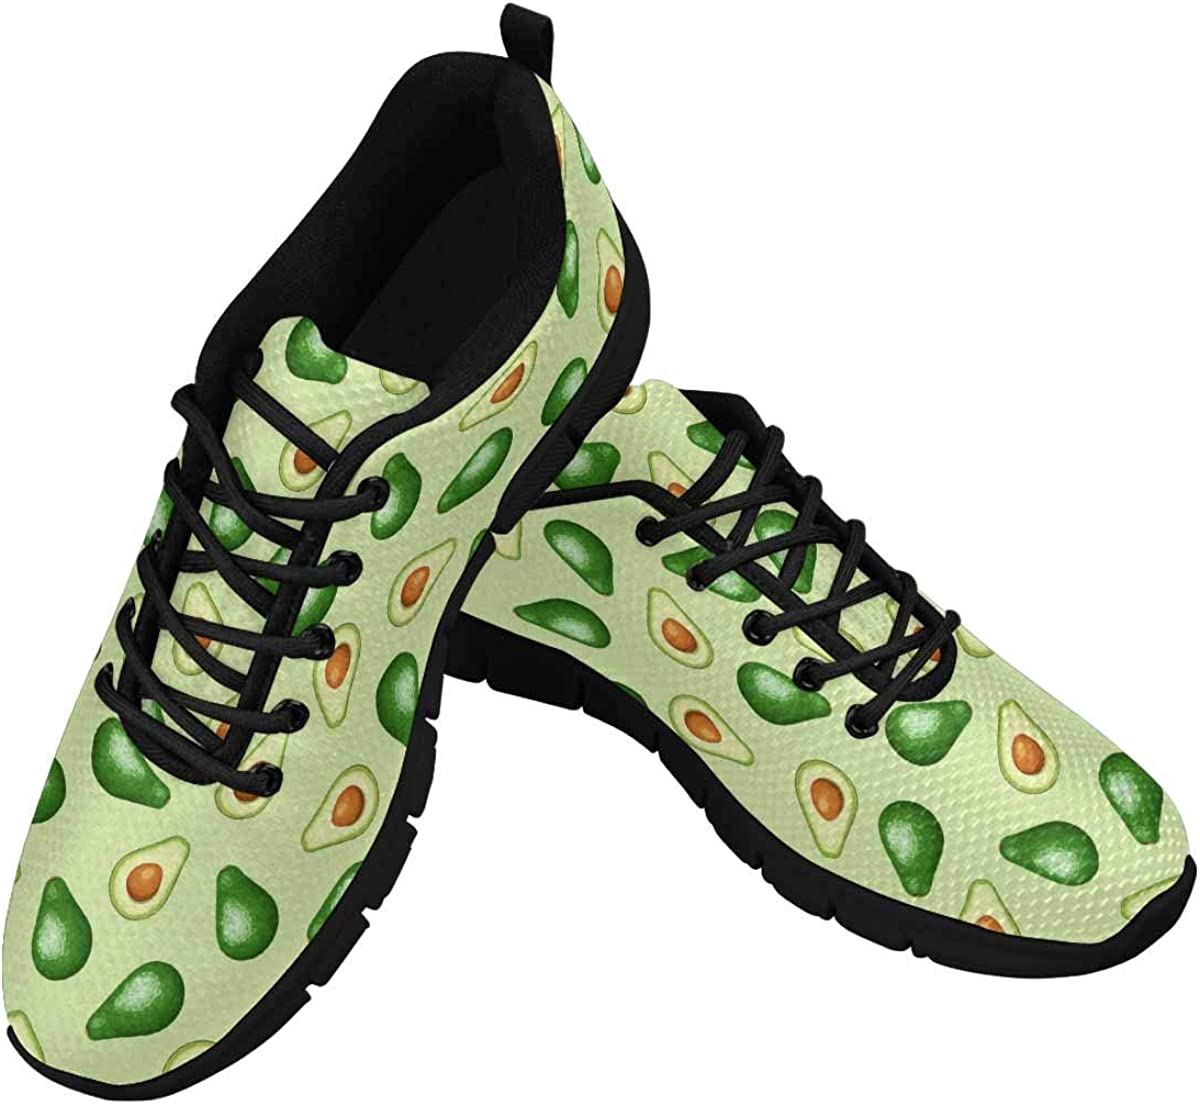 InterestPrint Cute Avocado Sneaker Women's Cheap New products, world's highest quality popular! bargain Breathable